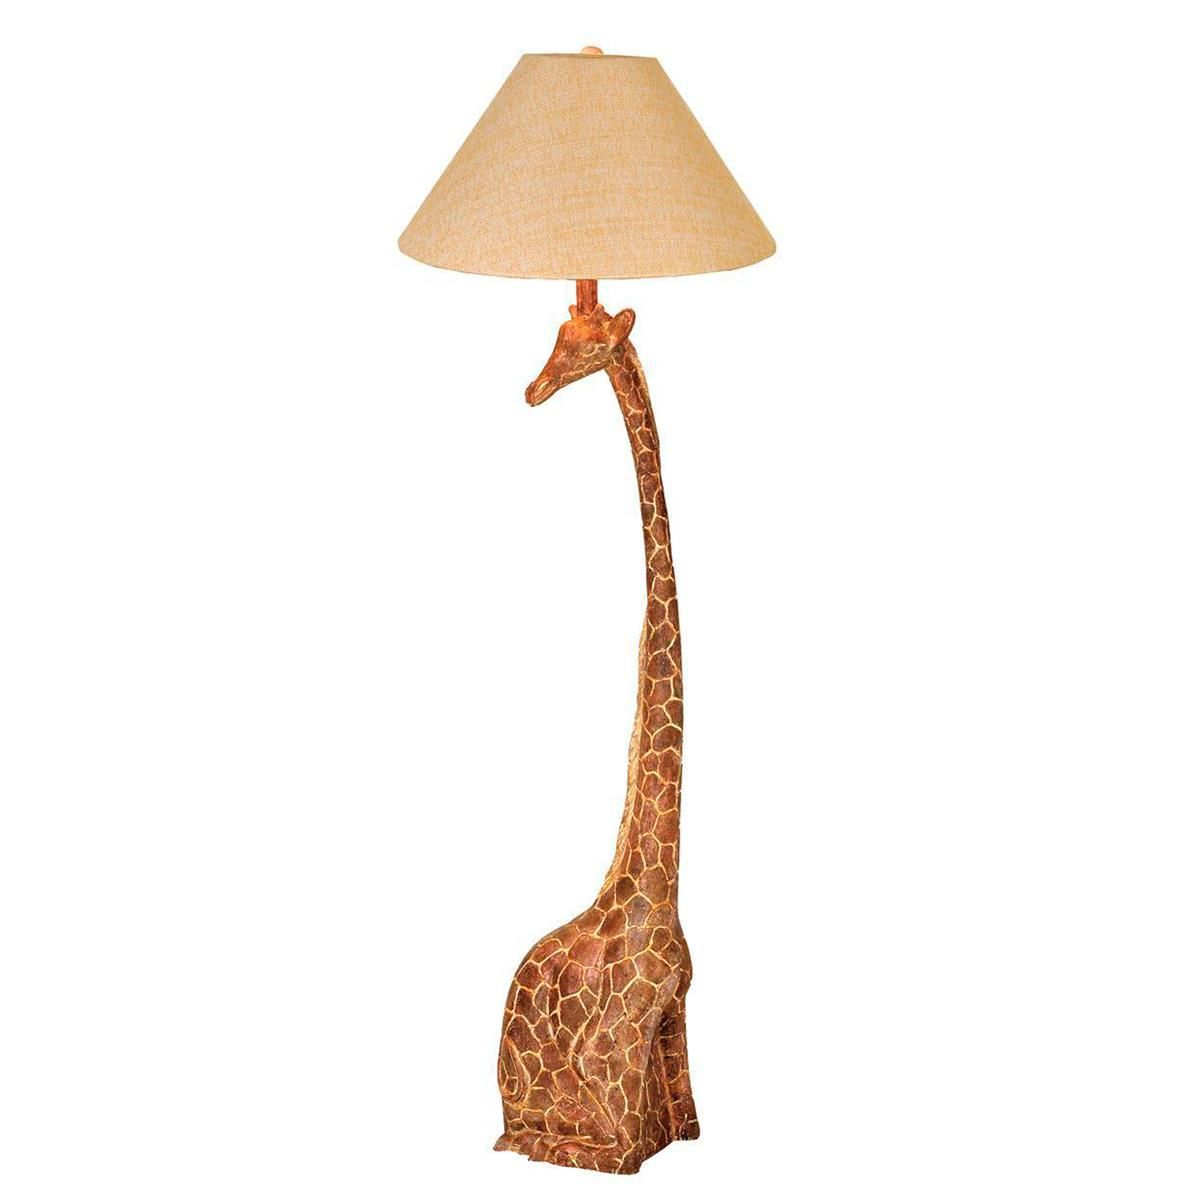 Giraffe Floor Lamp Cute For Nursery Bedroom Lamps Room